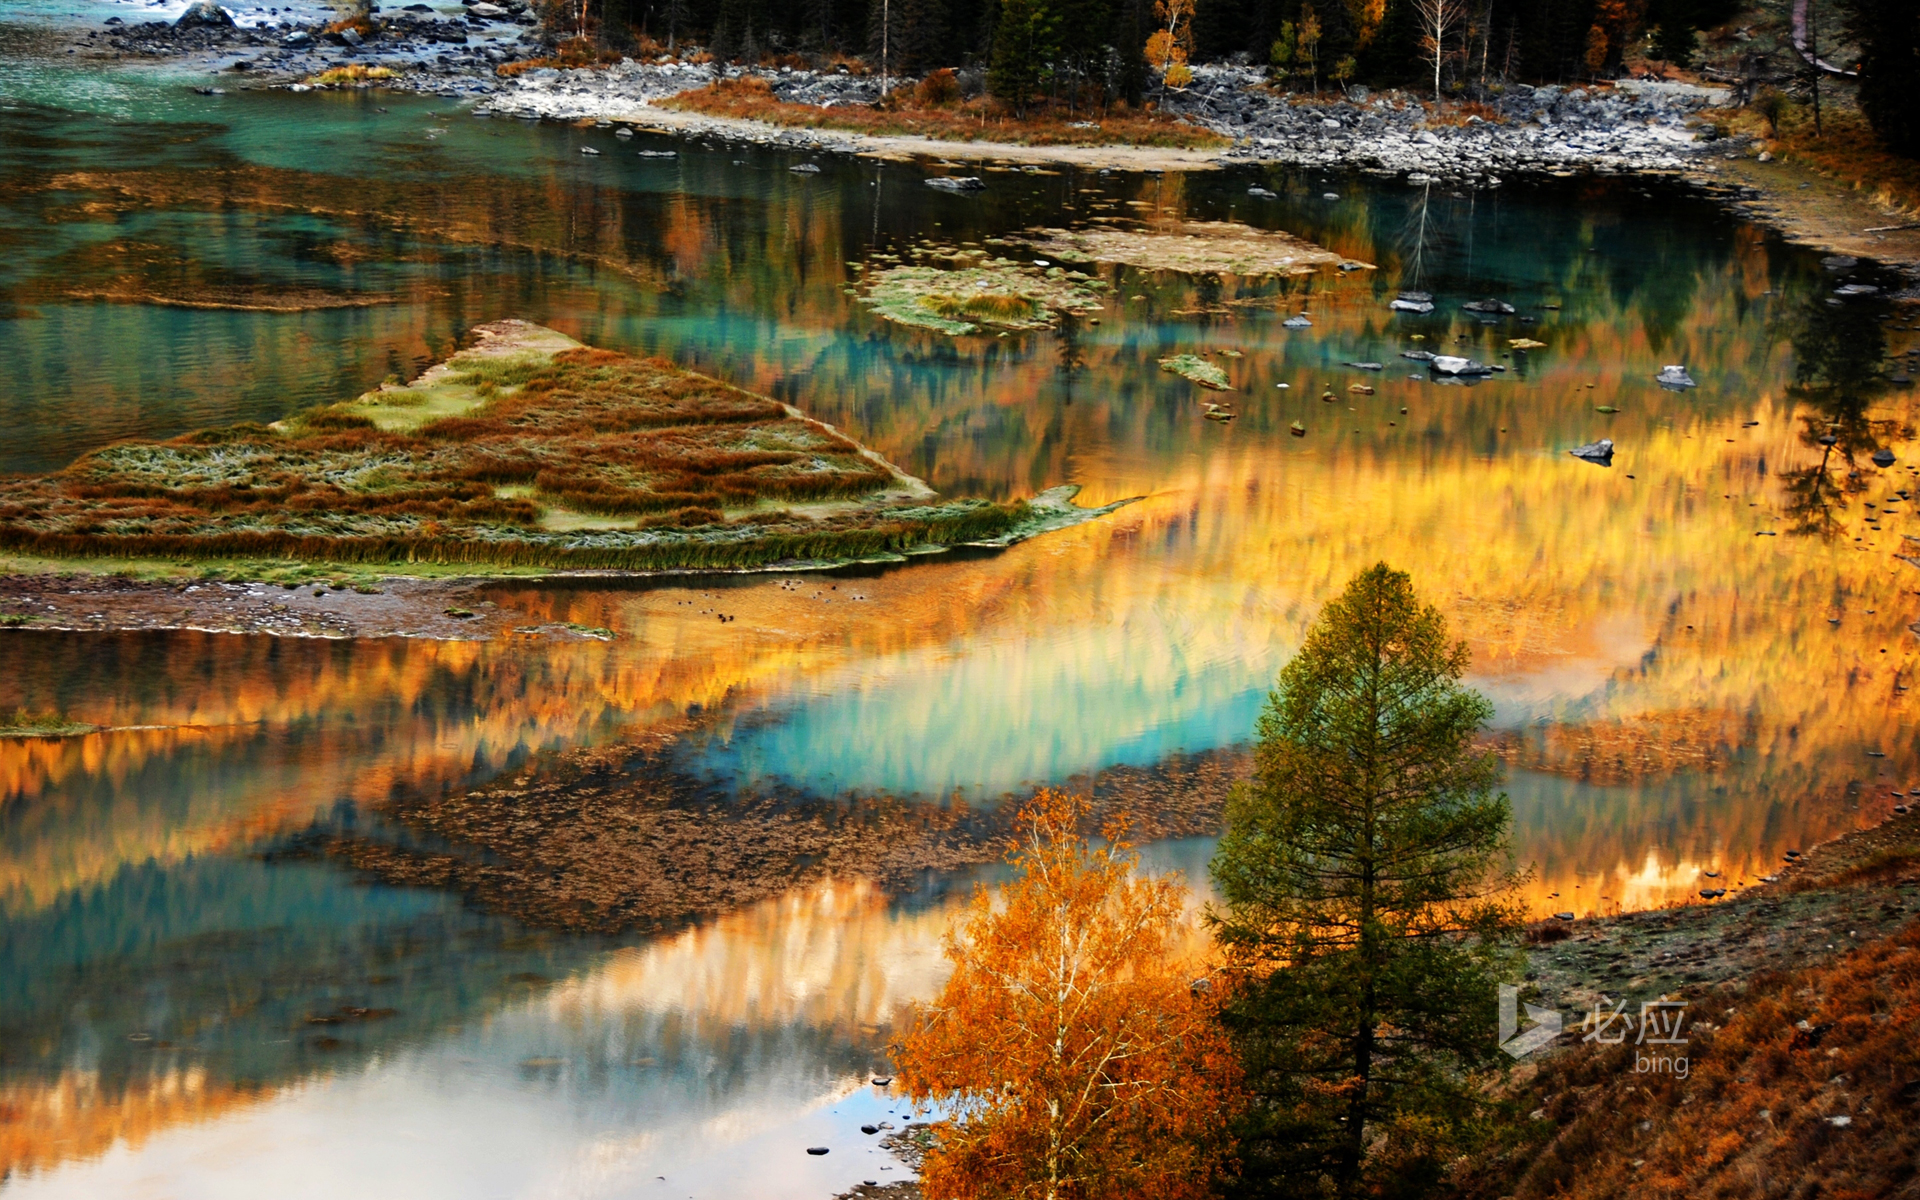 Reflection of colorful trees on lake in autumn day